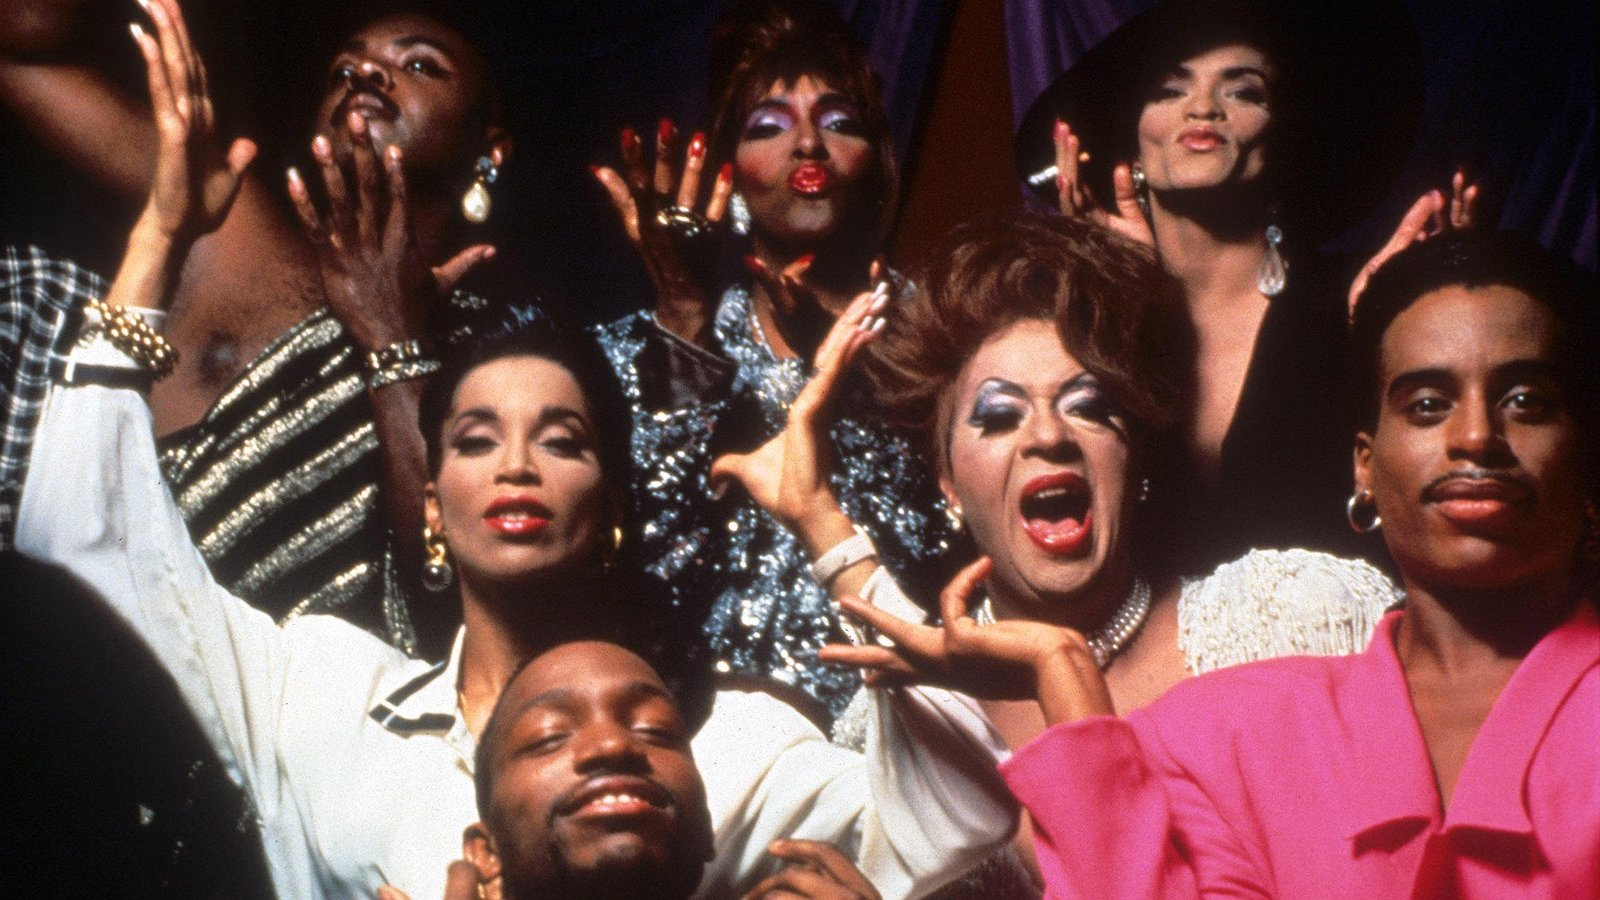 Strike a pose: Ryan Murphy maakt serie over New York in de 80s